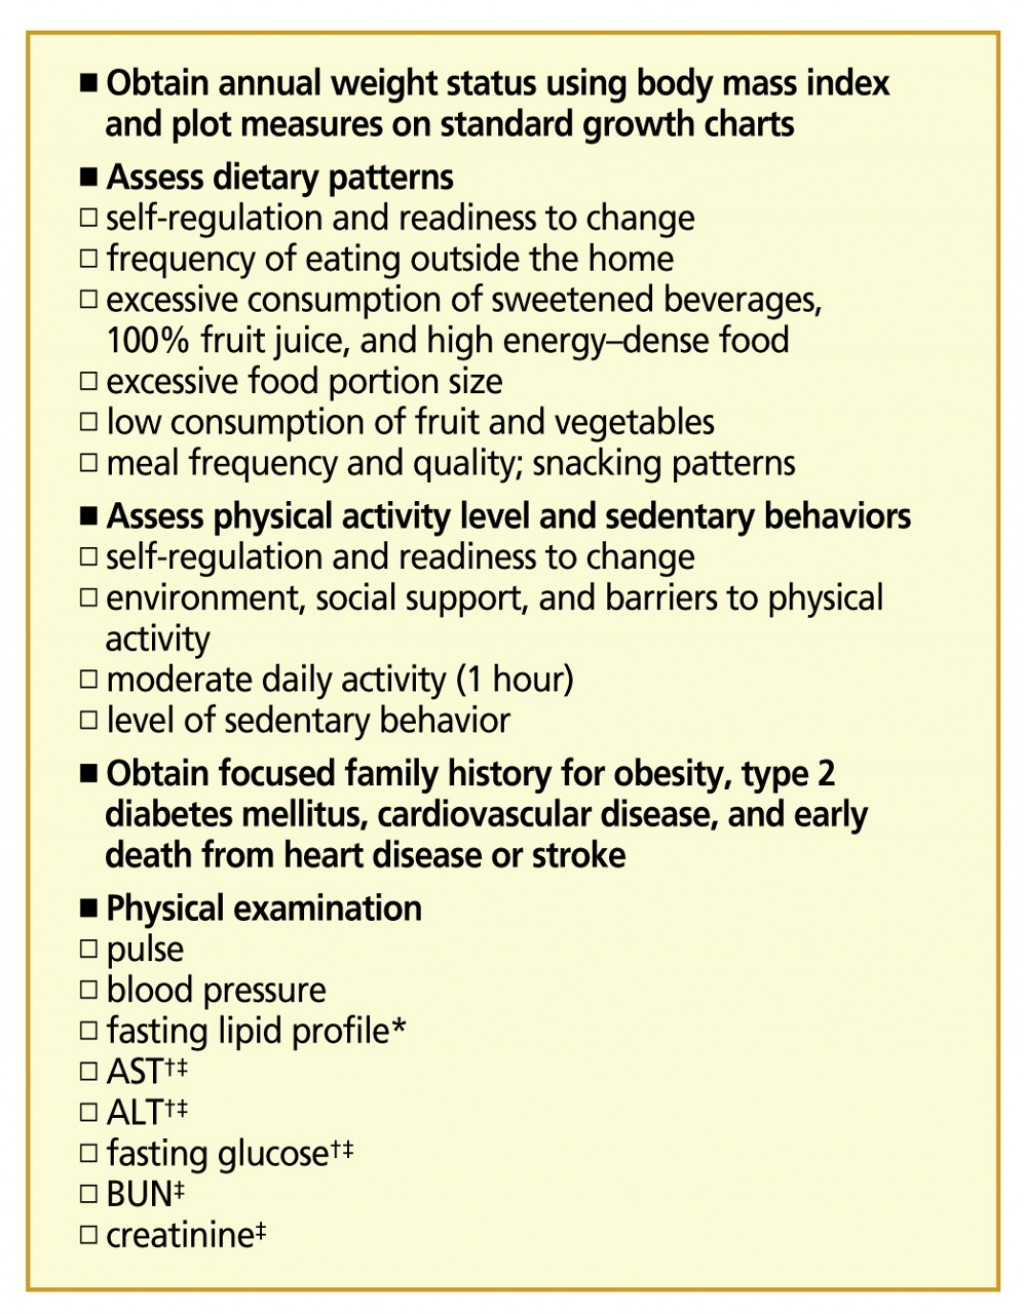 017 Research Paper Childhood Obesity Papers Unusual Thesis Statement Articles Abstract Large